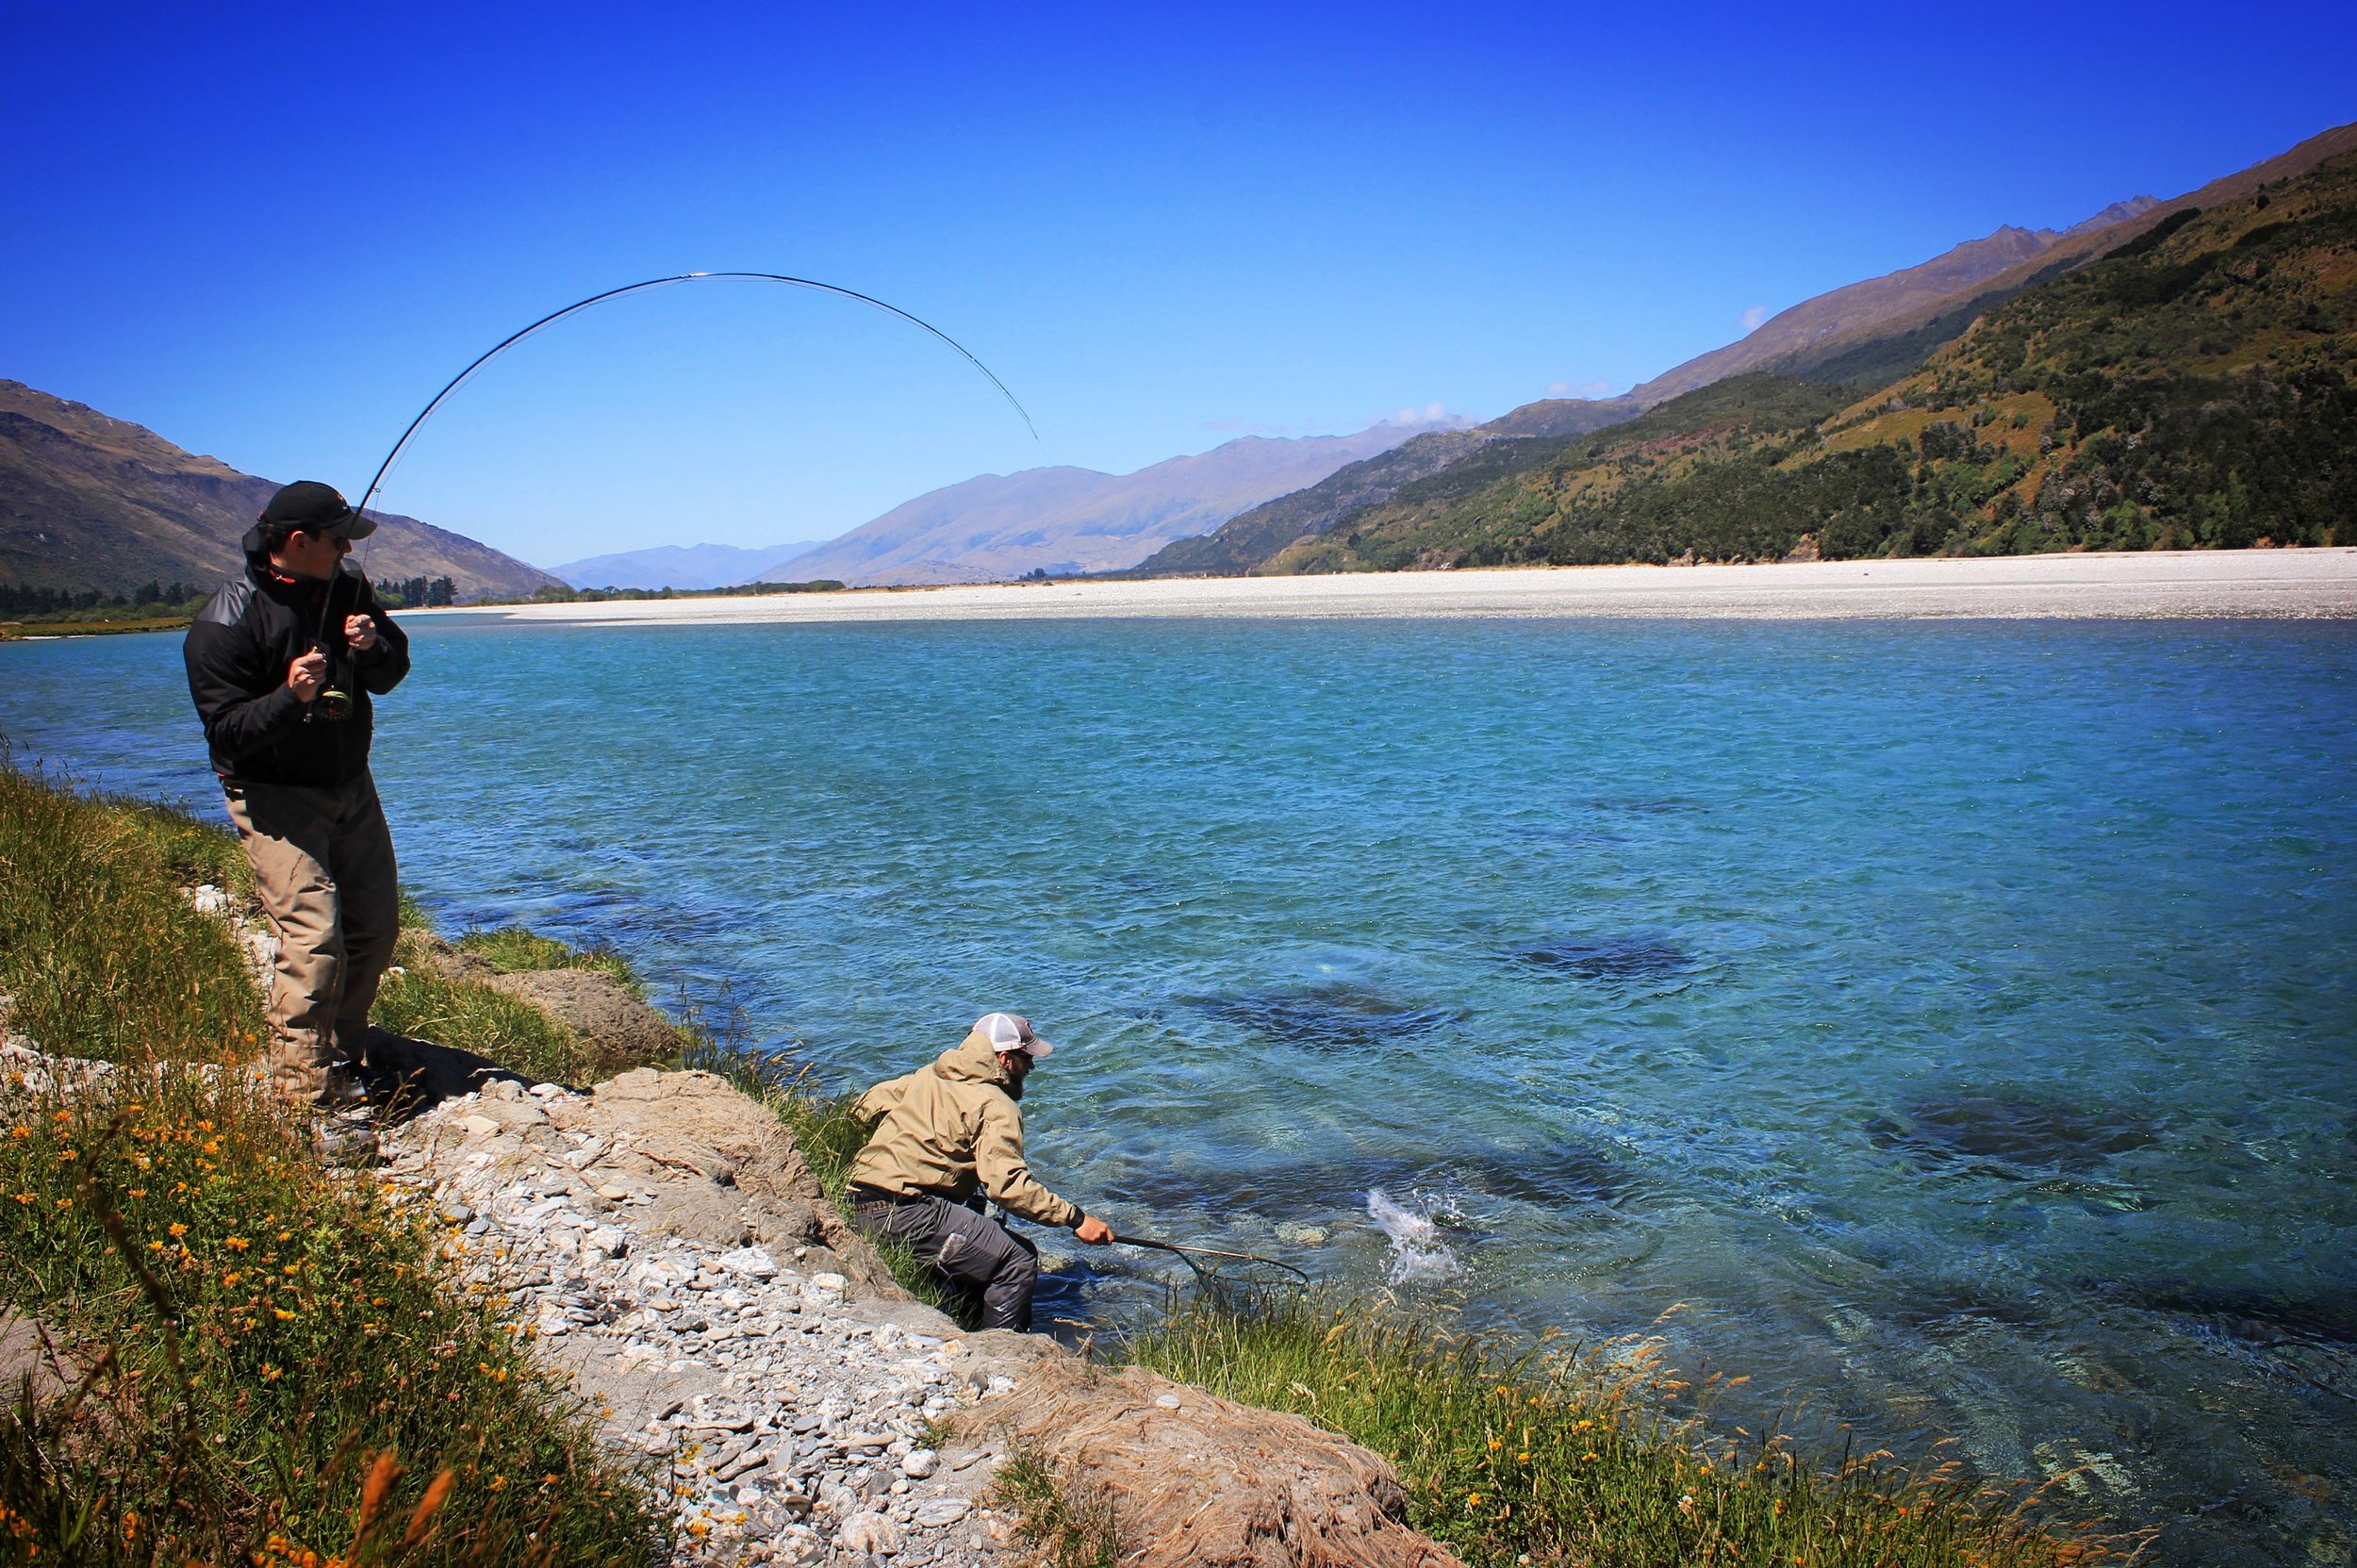 Wanaka, New Zealand fly fishing guide Jeff Forsee netting a fish!